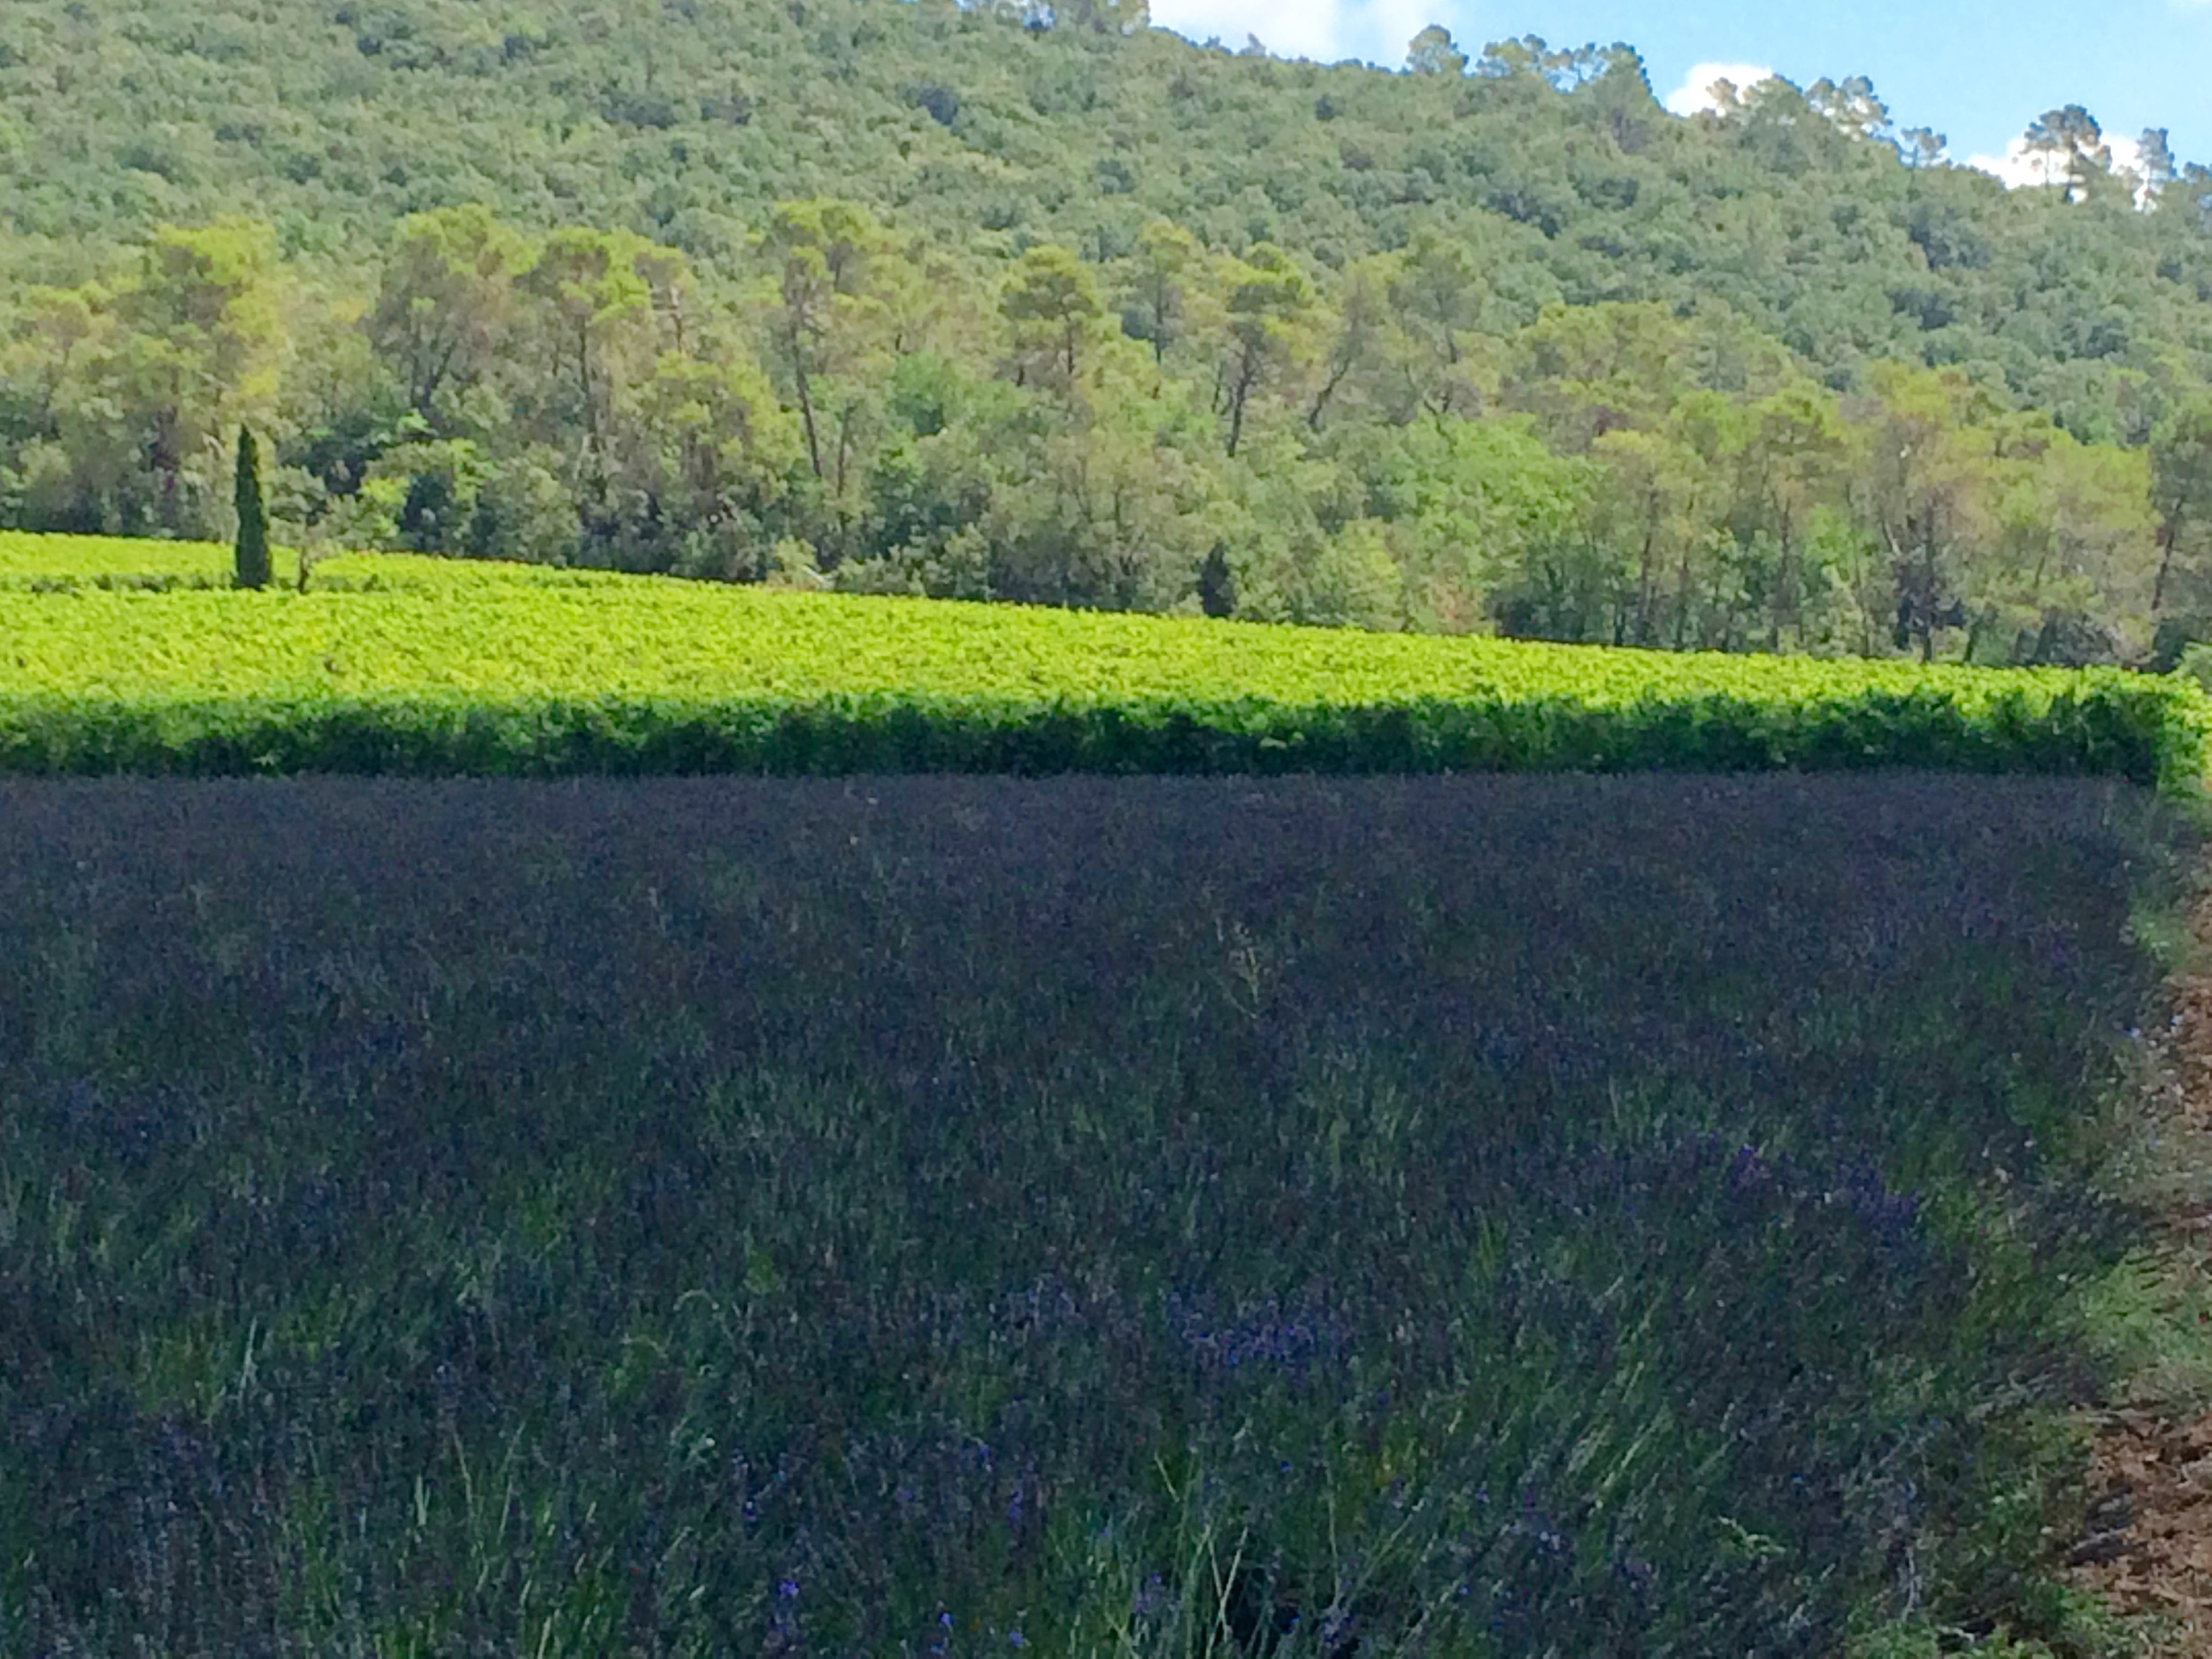 Lavender at Chateau LaCalisse